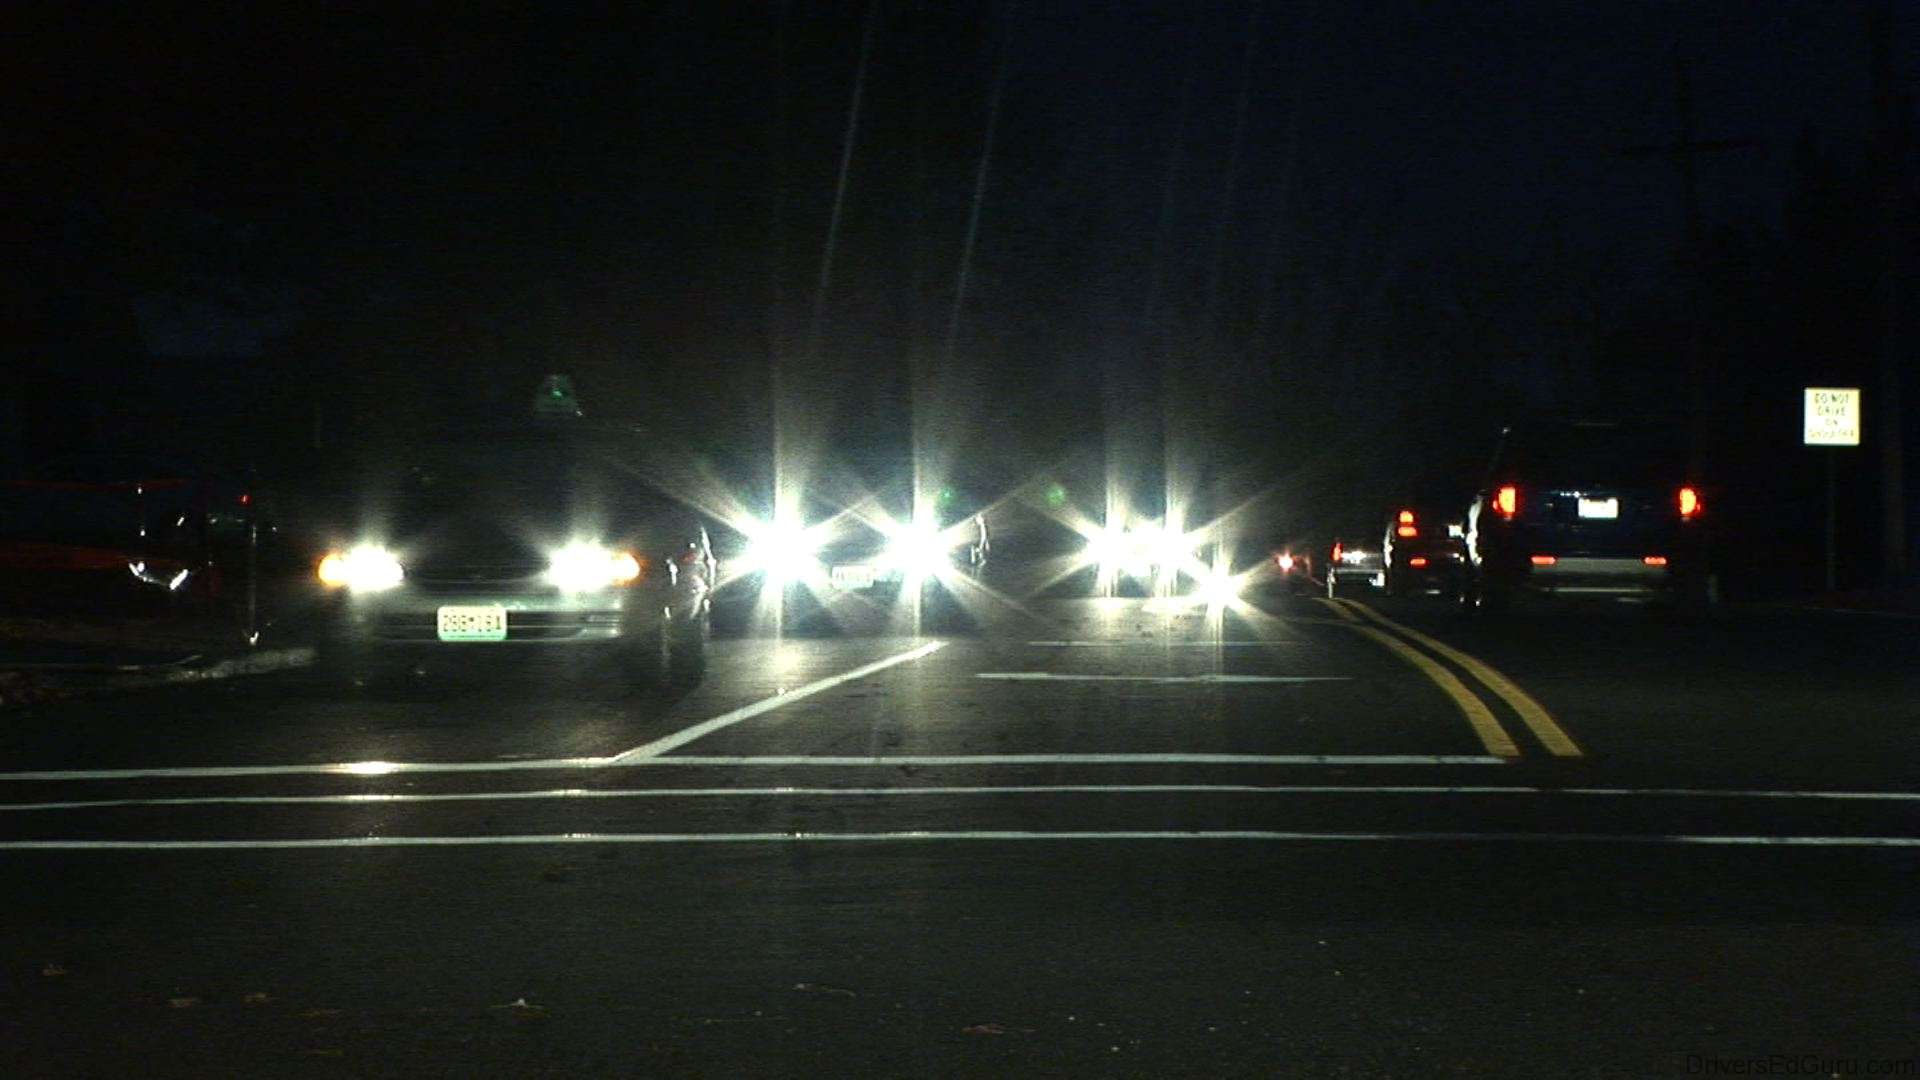 Lots of Glare